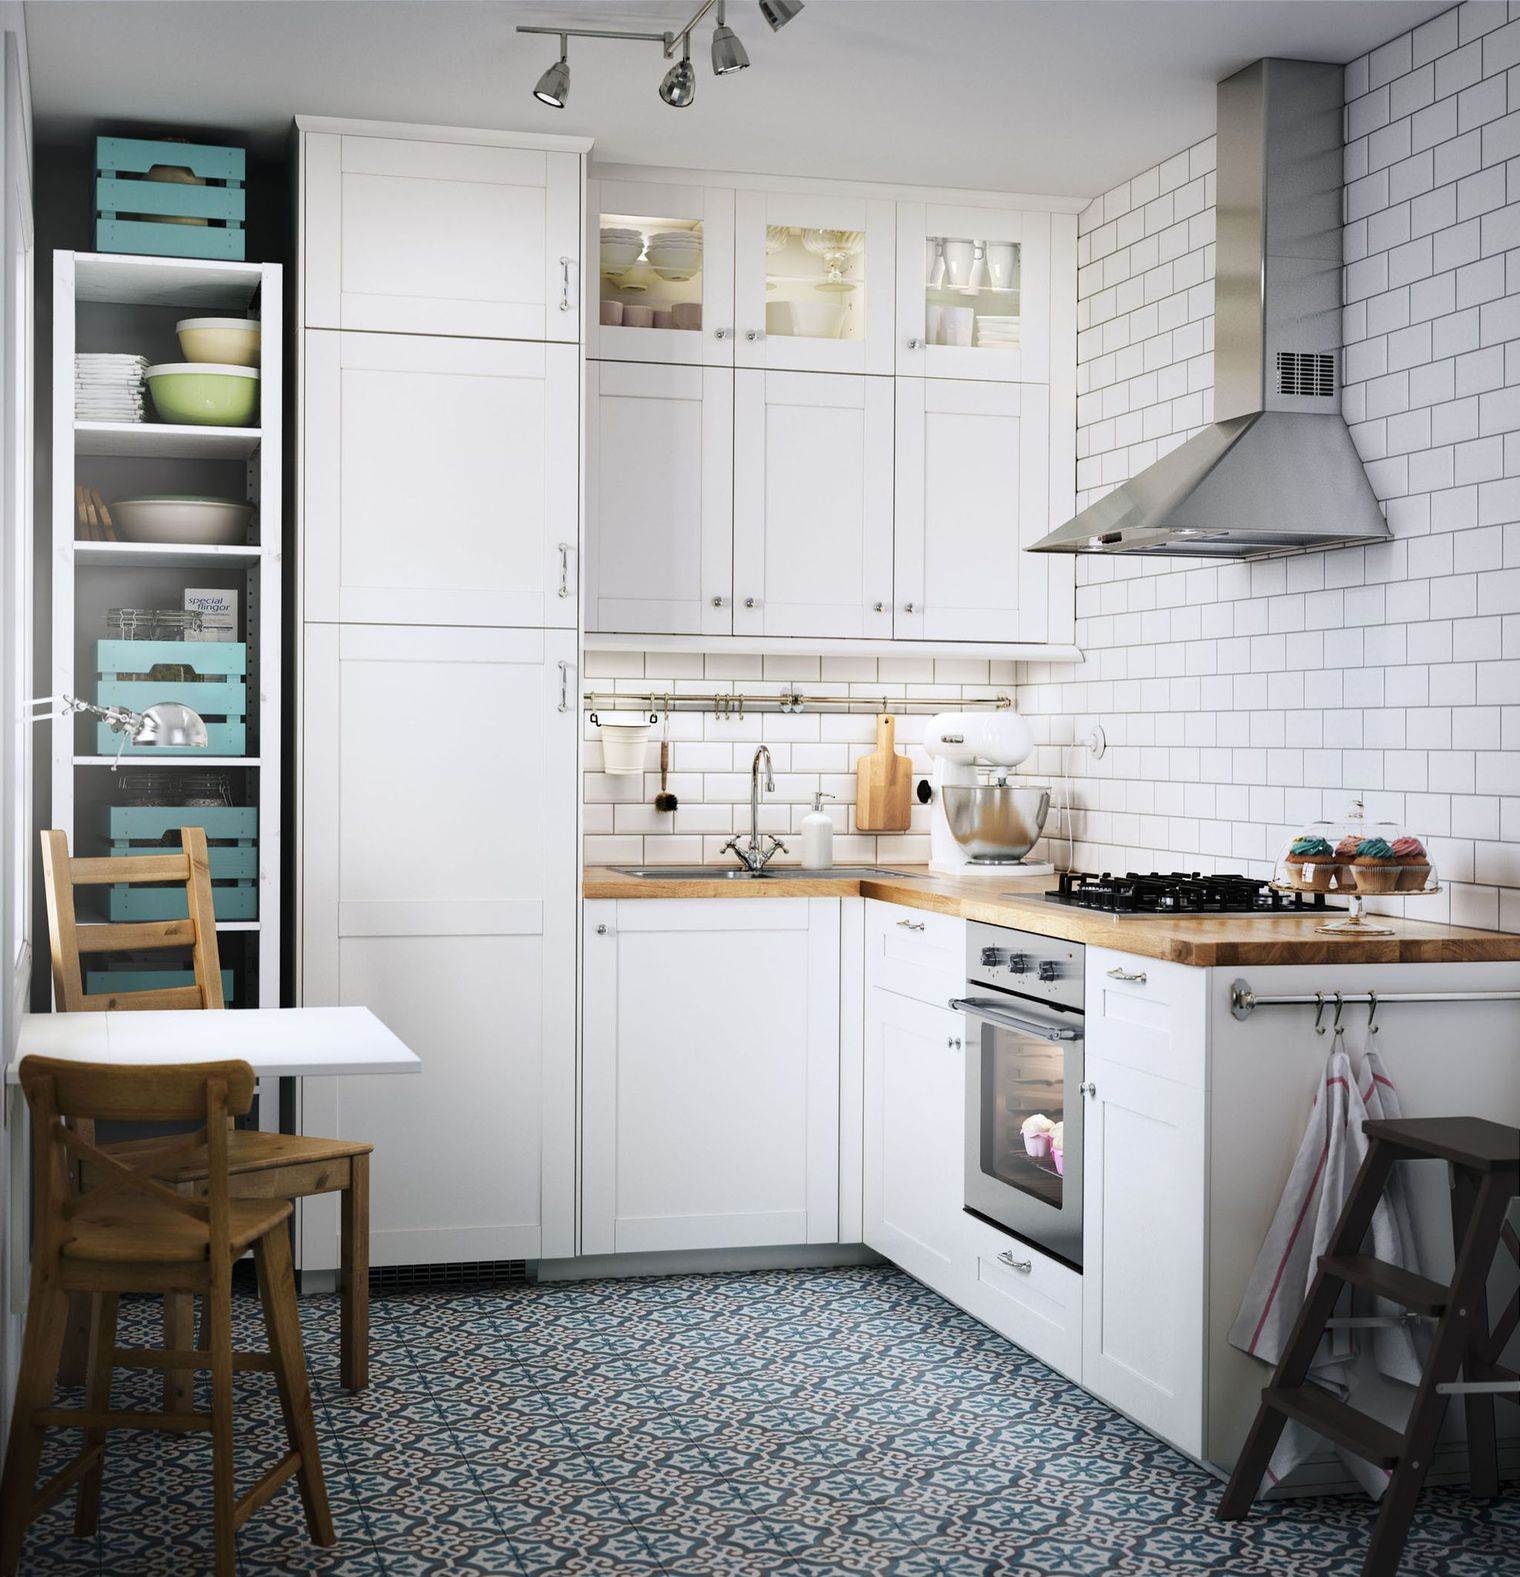 51 Small Kitchen Design Ideas That Make The Most Of A Tiny: 16 Small Kitchen Design Ideas